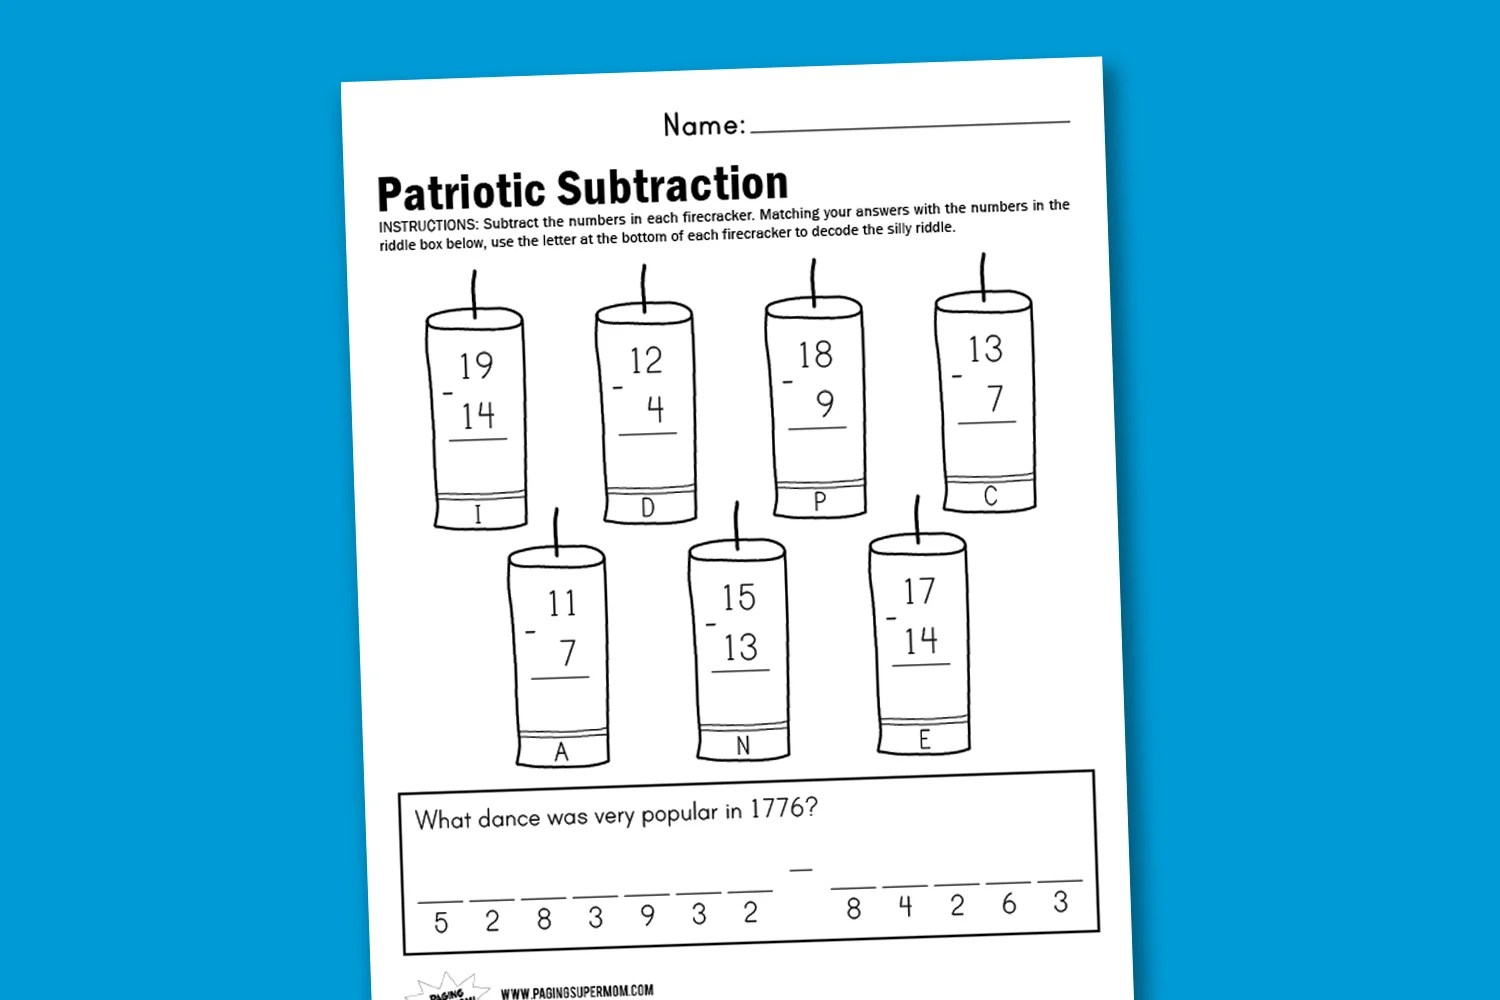 Worksheet Wednesday Patriotic Subtraction